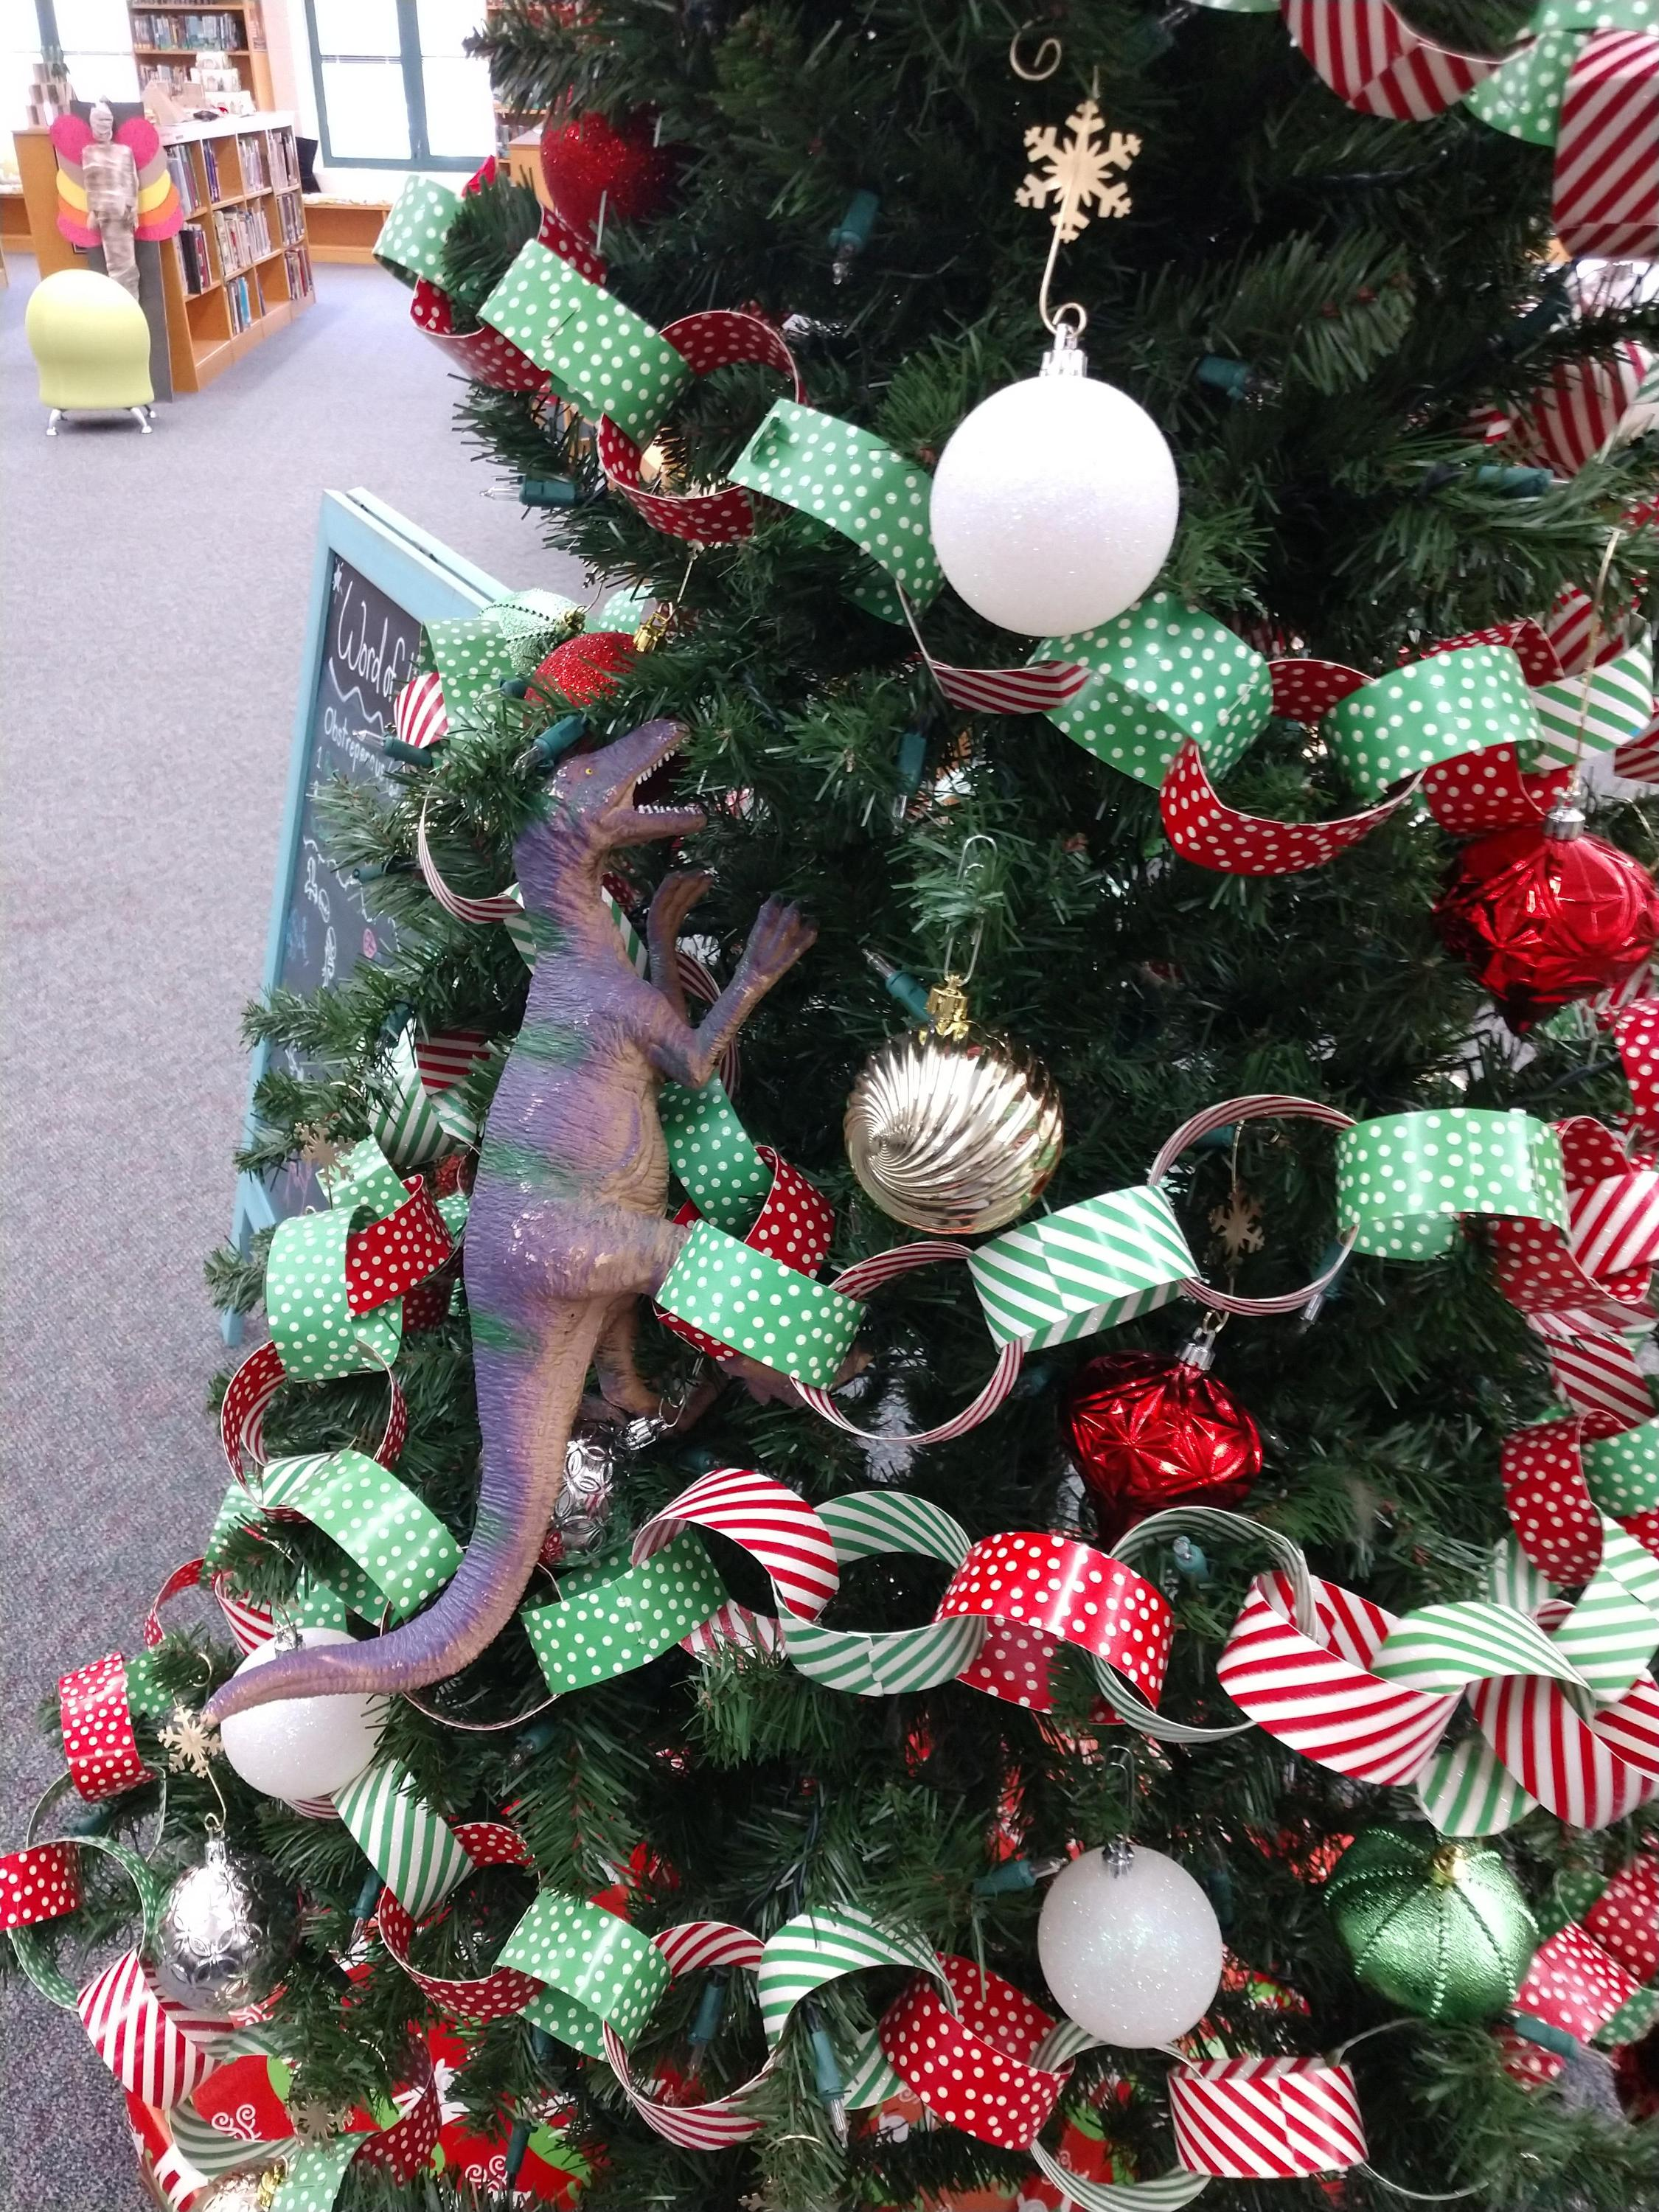 Steve the dinosaur wrecking the library christmas tree!